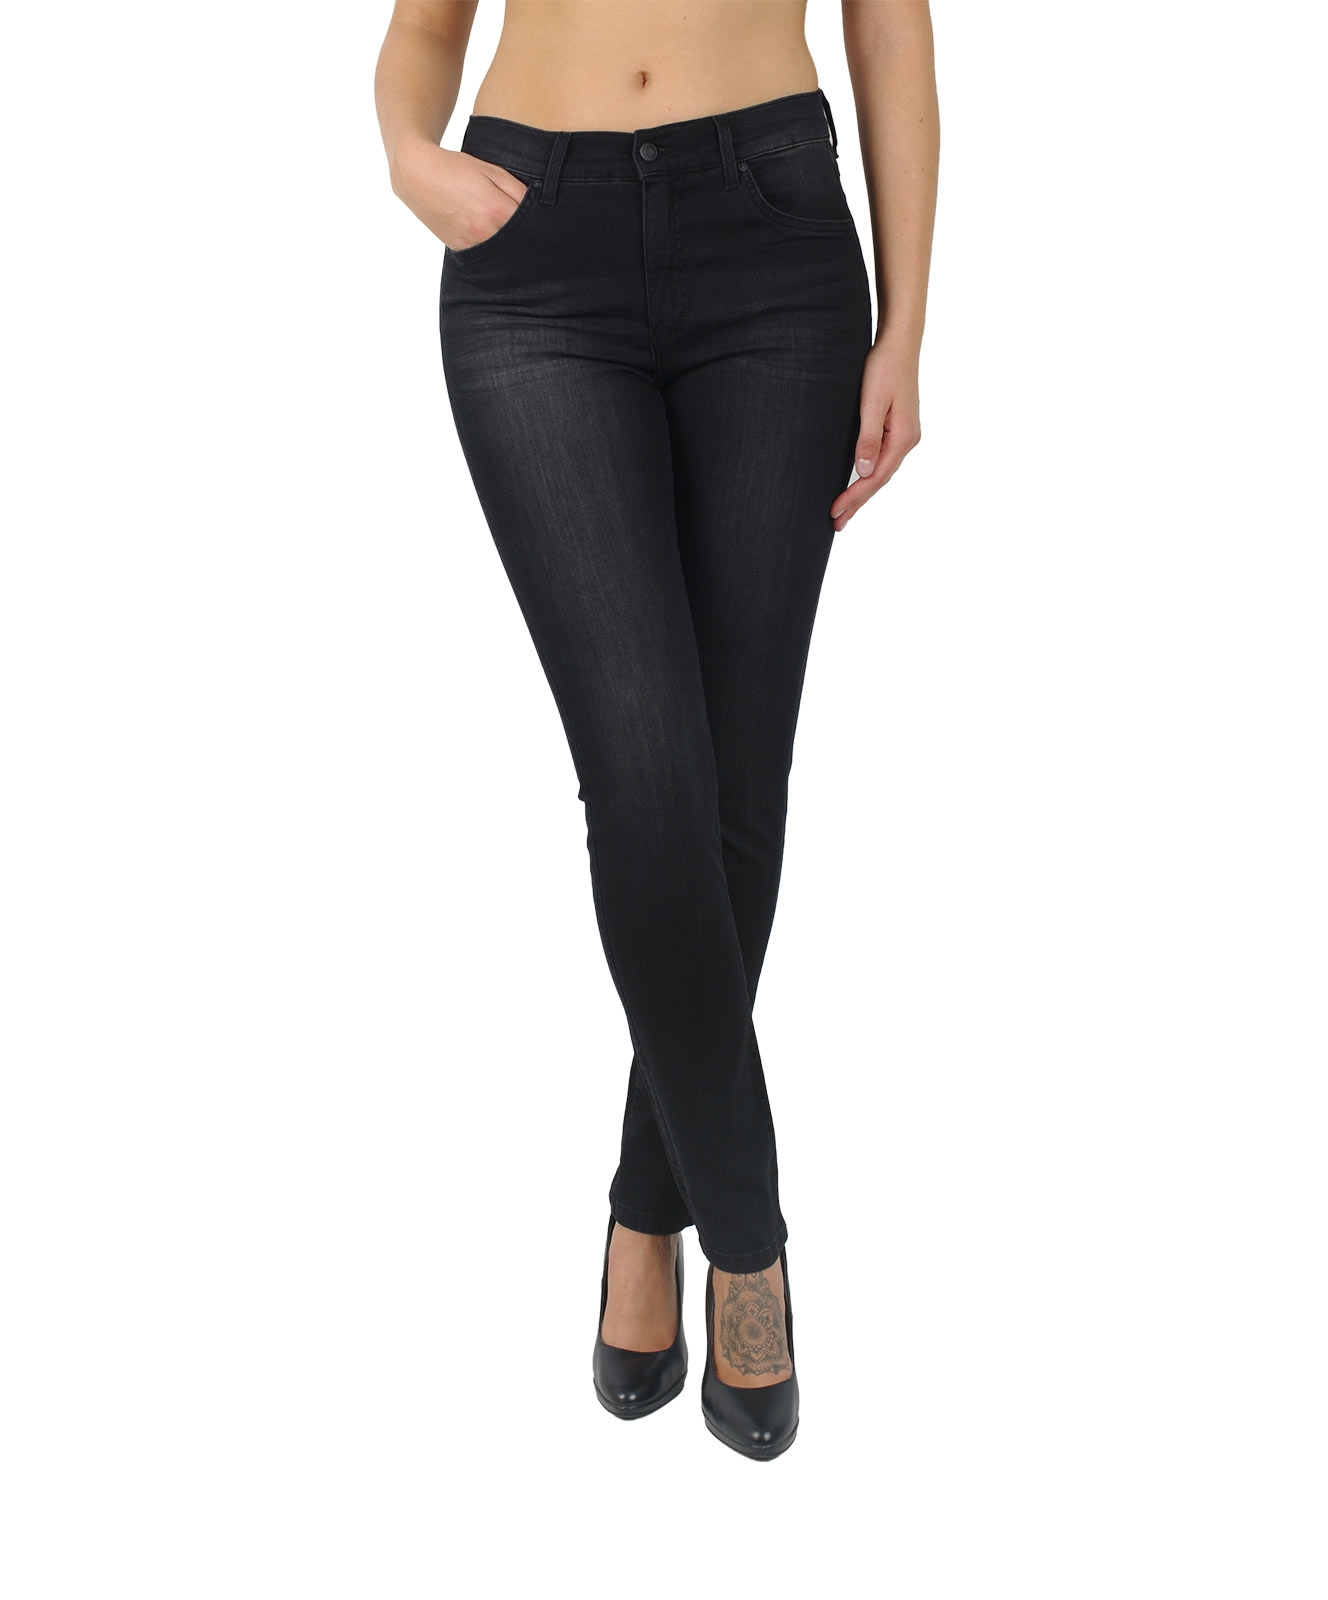 Hosen - Angels Skinny Jeans Skinny in Black Used Buffi  - Onlineshop Jeans Meile